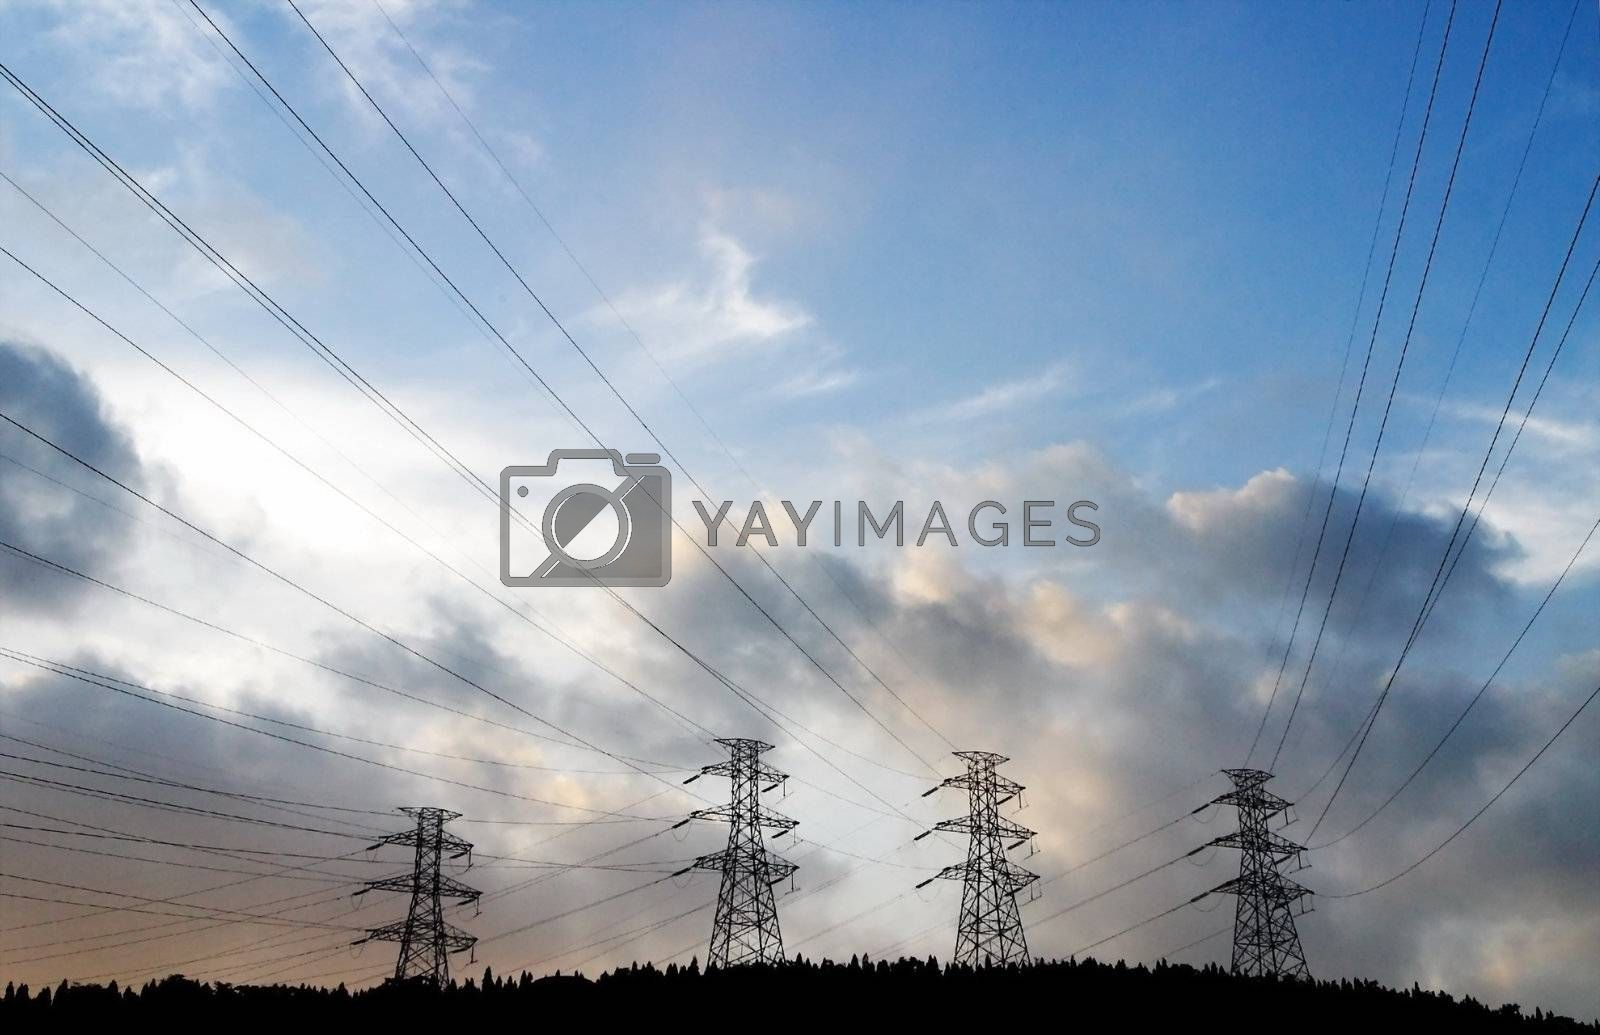 Royalty free image of  Scenery, tower, sky, electric power, electric wire, electric transmission,  by xps